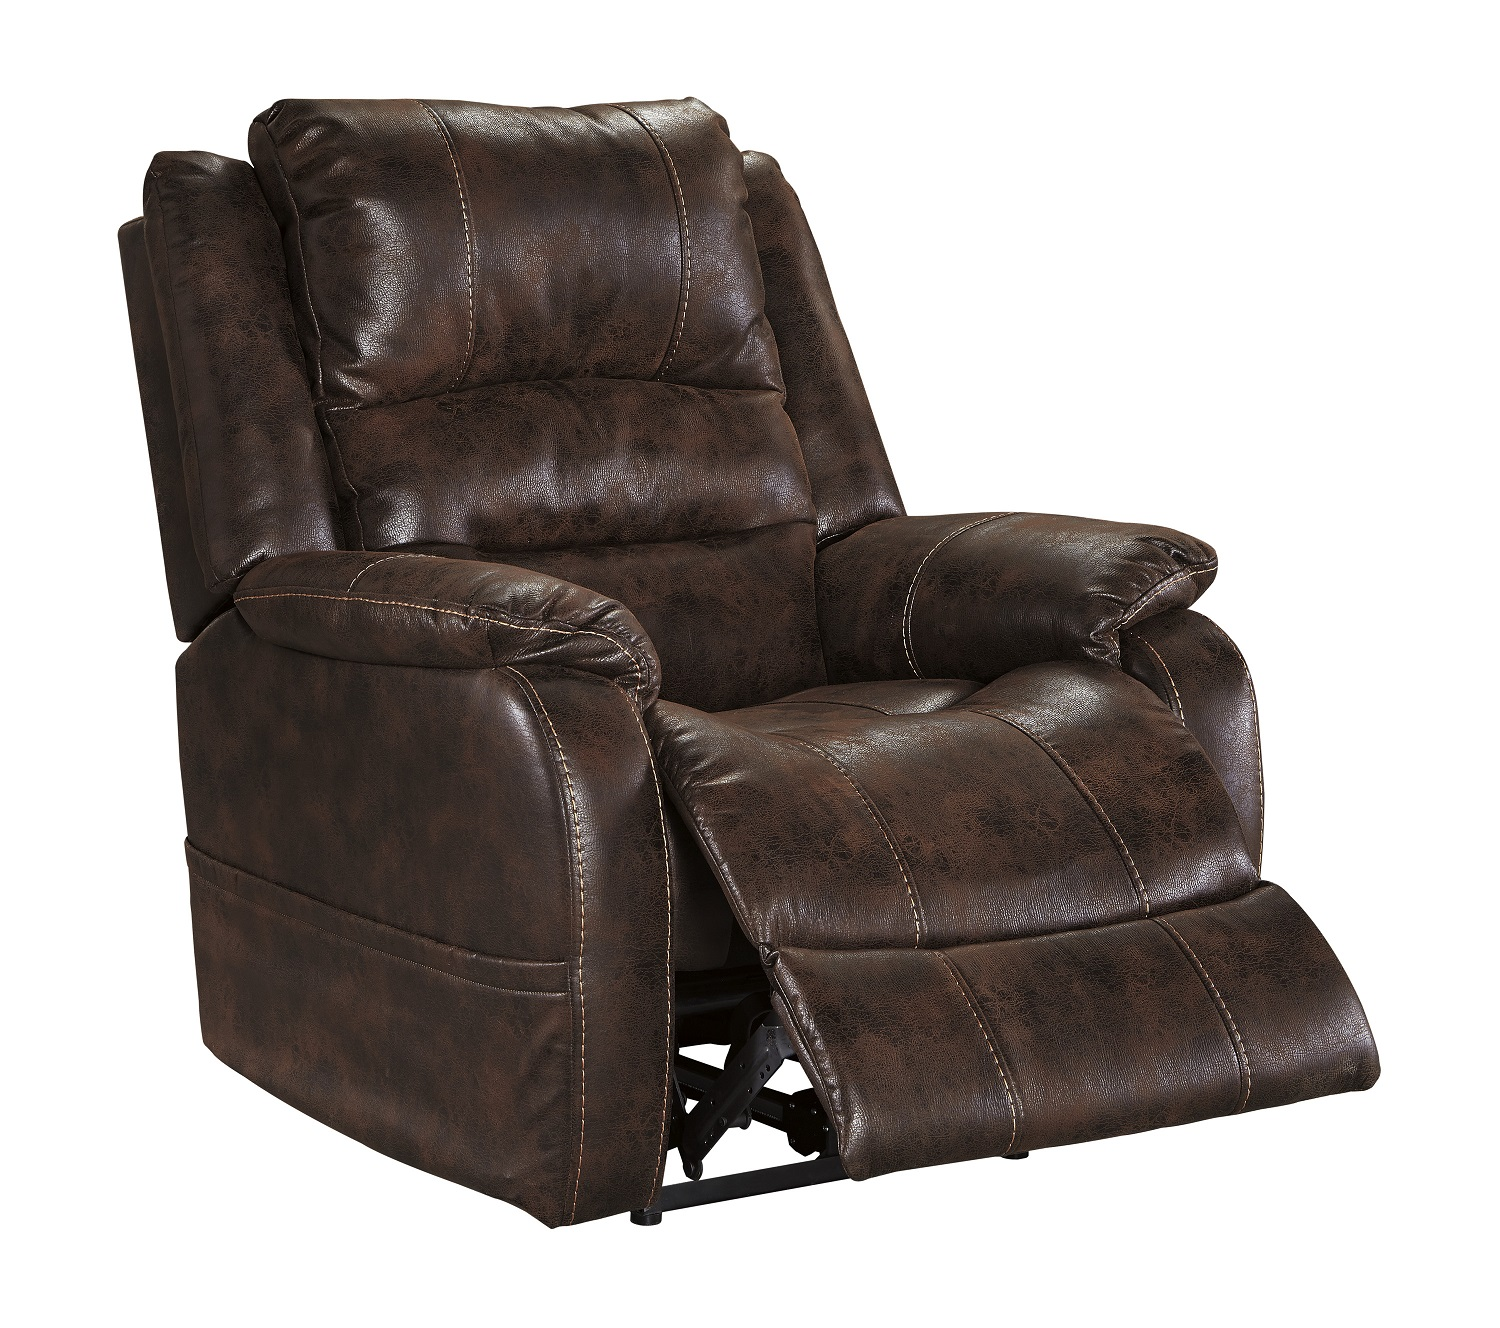 Barling Recliner Headrest & Lumbar Image